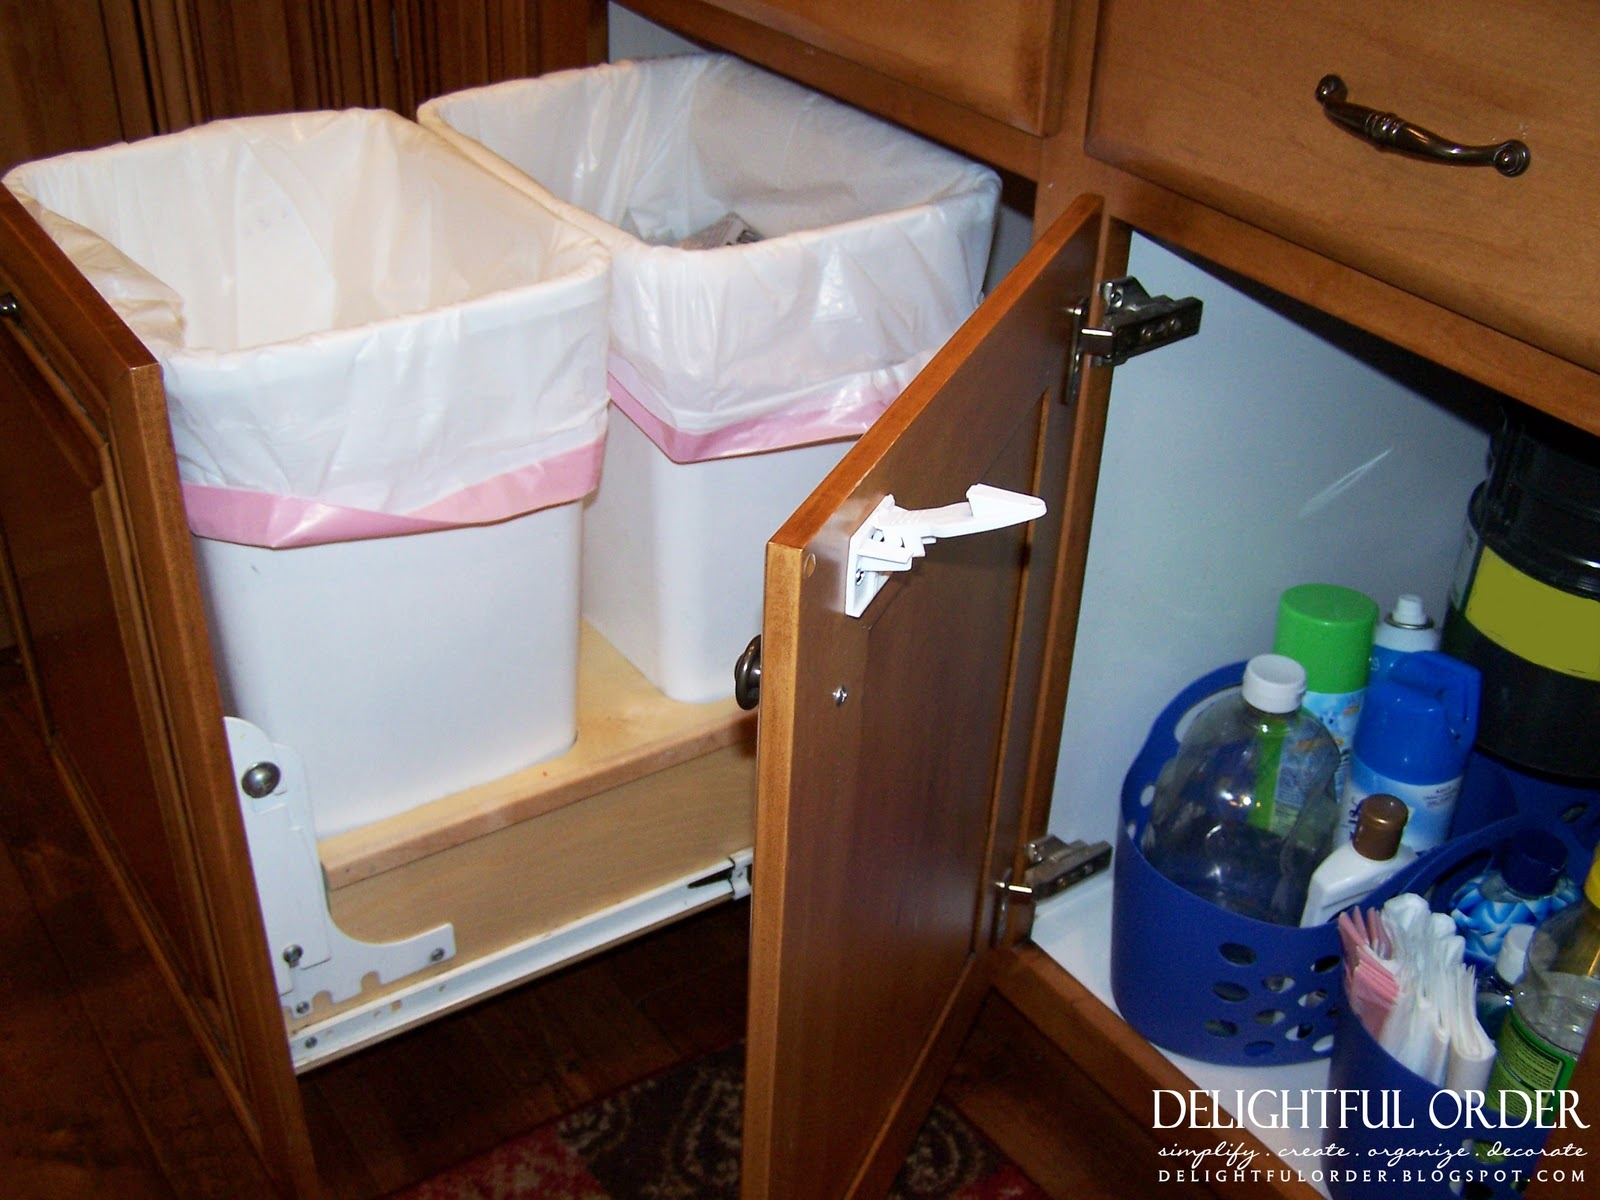 Delightful Order Organizing Under The Kitchen Sink